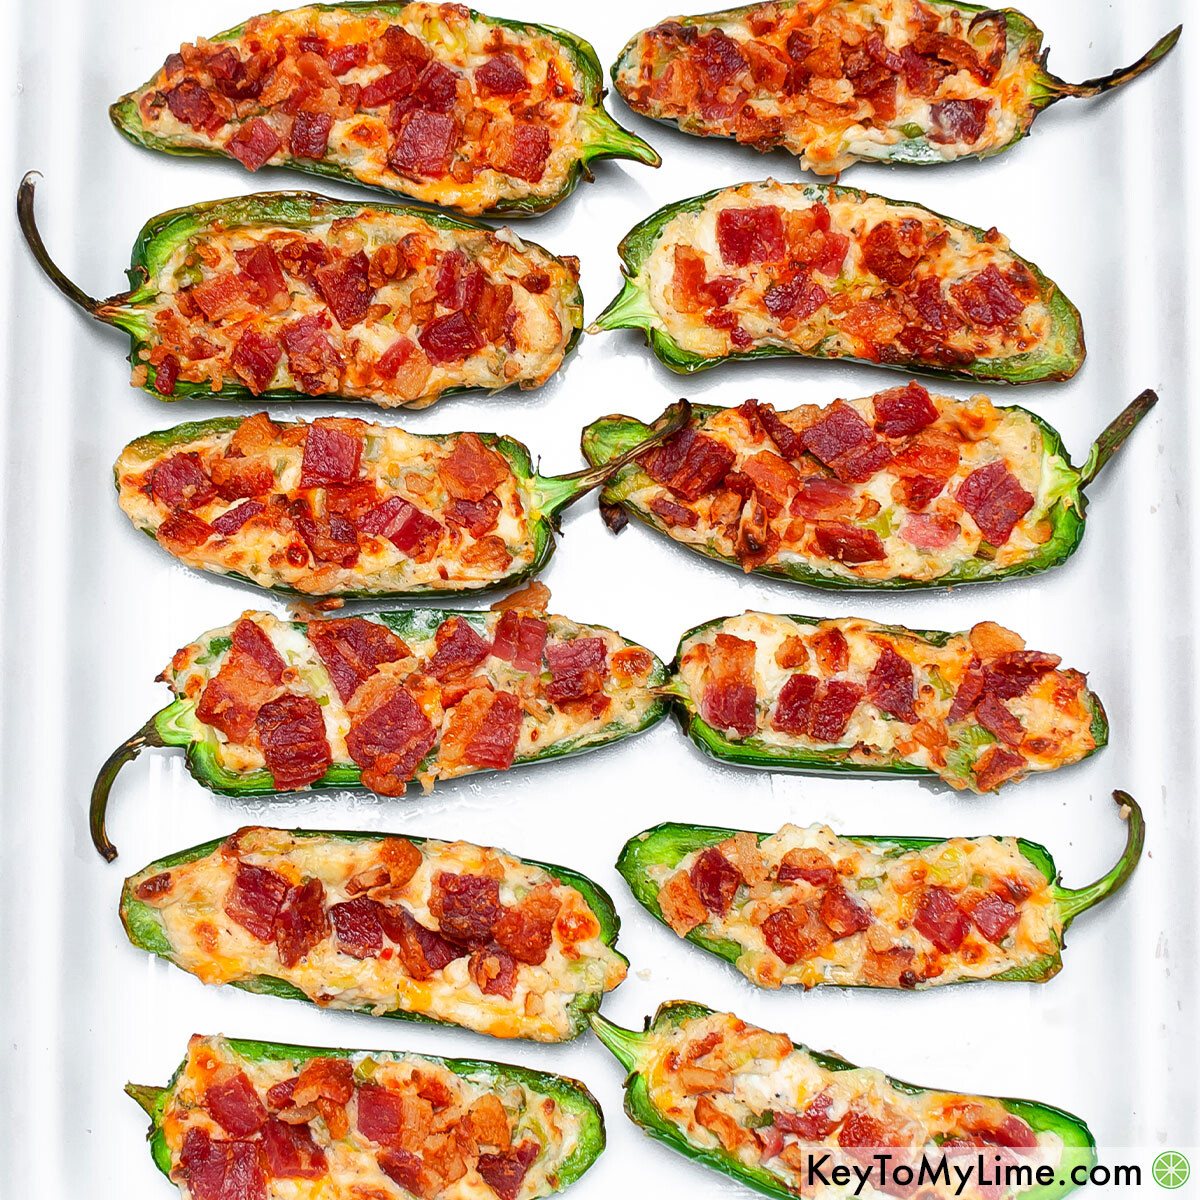 Air fryer keto jalapeno poppers on a white platter,